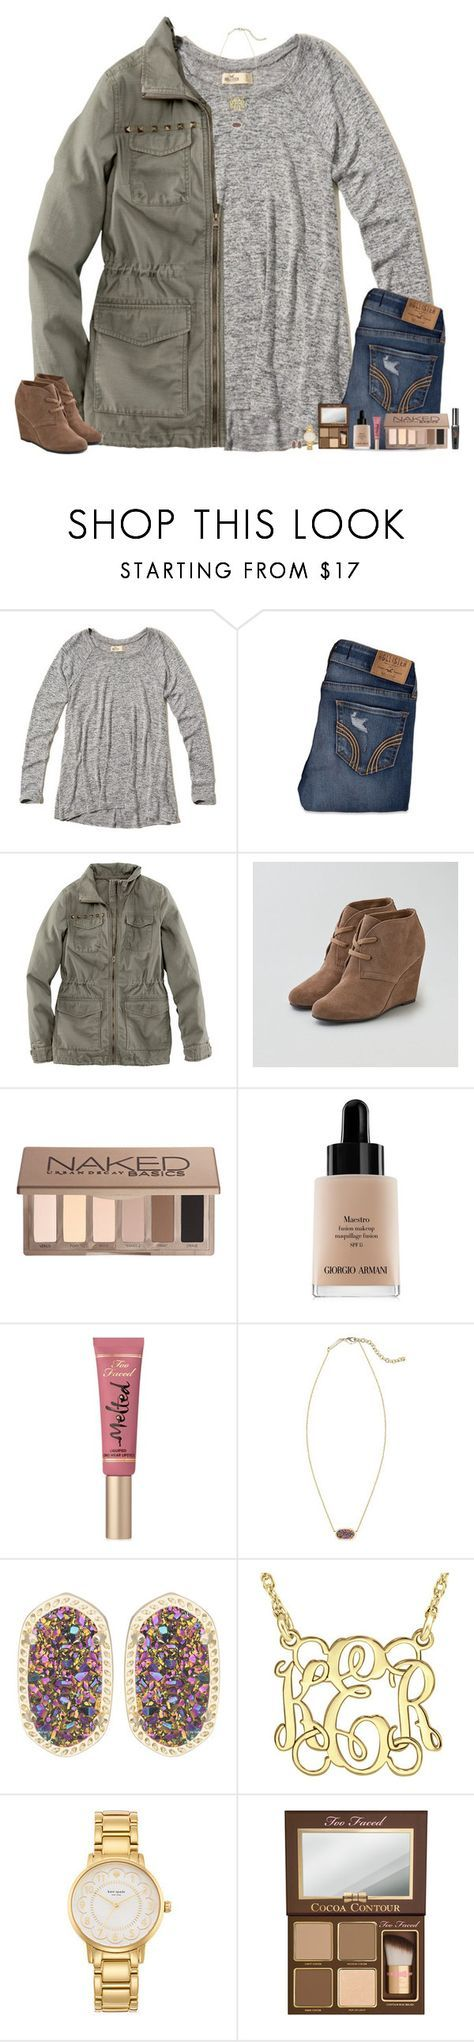 """I'm in pain."" by maggie-prep ❤ liked on Polyvore featuring Hollister Co., H&M, American Eagle Outfitters, Urban Decay, Giorgio Armani, Too Faced Cosmetics, Kendra Scott and Kate Spade"